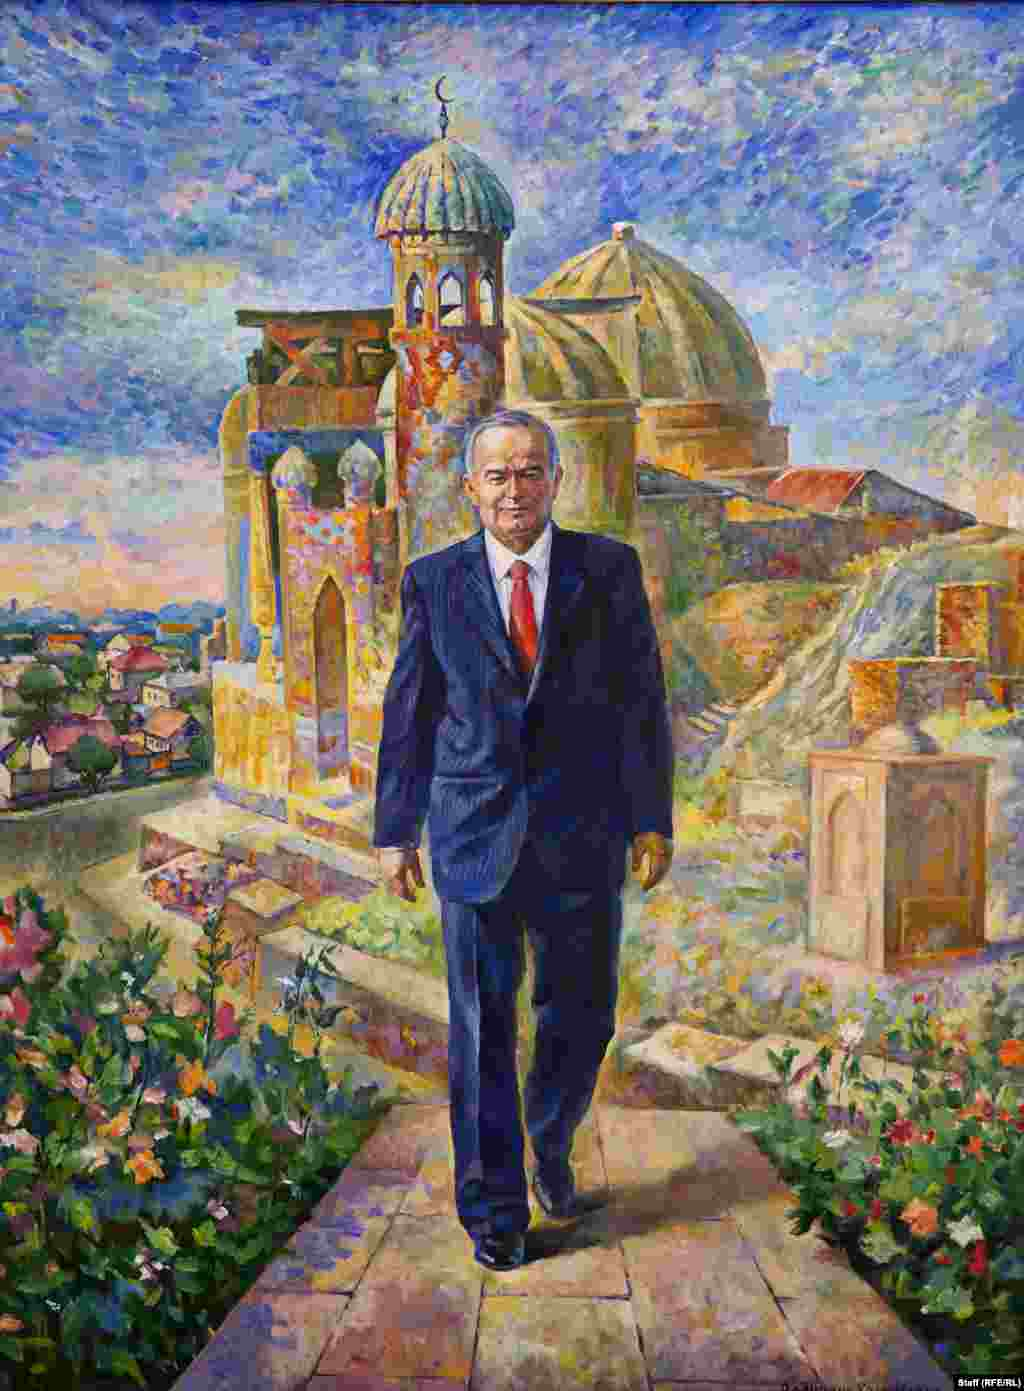 Karimov ambling through an impressionist Uzbek cityscape. During the 25 years he ruled over independent Uzbekistan, the Soviet apparatchik-turned-president-for-life never faced free democratic elections and ran a police state that was accused of routine torture.